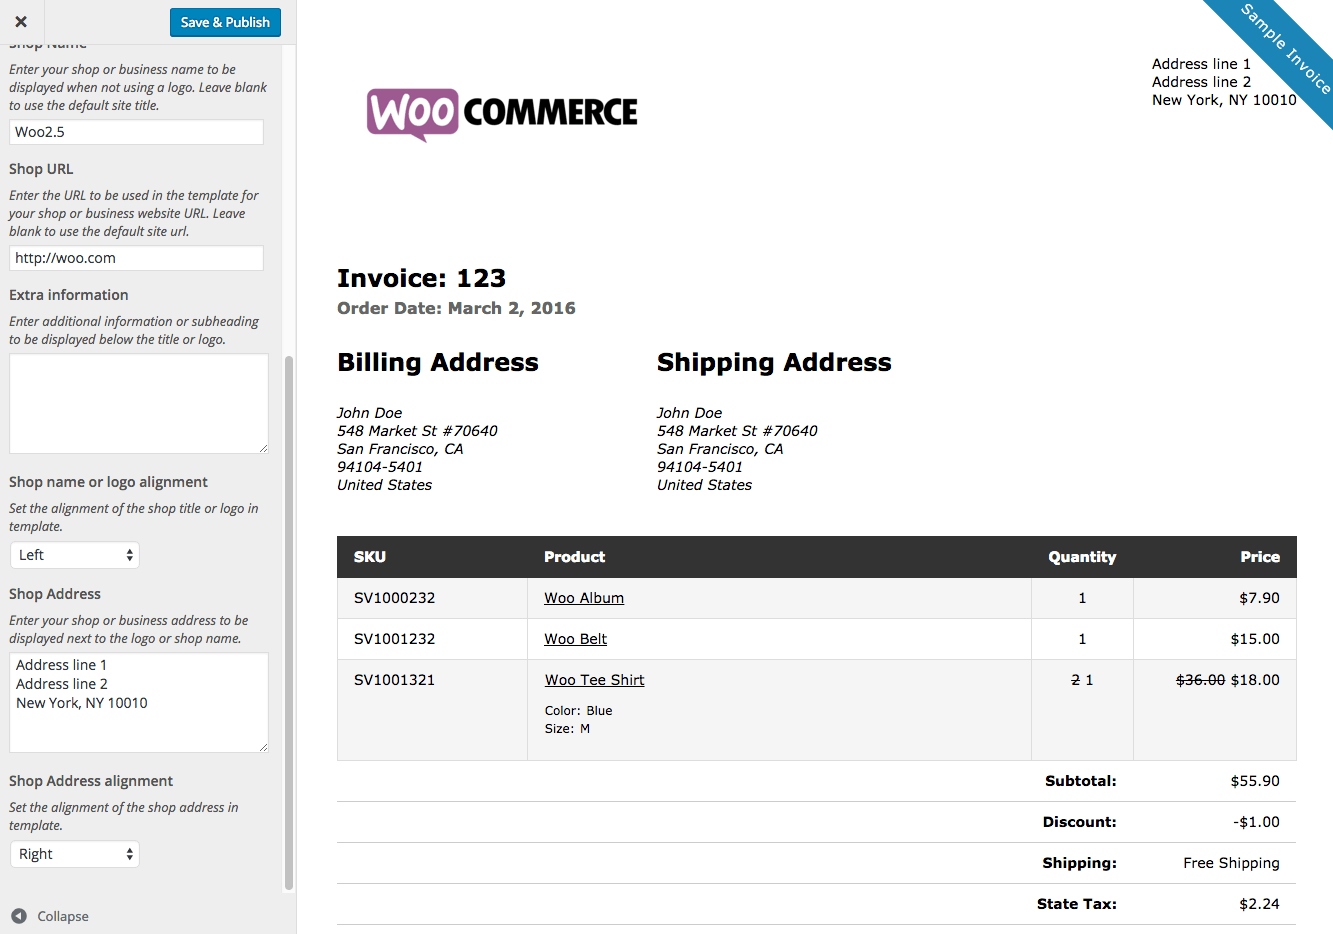 Totallocalus  Fascinating Woocommerce Print Invoices Amp Packing Lists  Woocommerce Docs With Entrancing Woocommerce Print Invoices  Packing Lists Customizer With Nice Please Kindly Acknowledge Receipt Of This Email Also Avis Rental Car Receipts In Addition Receipt For Selling Car And Charitable Donation Receipts As Well As Receipt Of Cash Payment Additionally Copy Receipts From Docswoocommercecom With Totallocalus  Entrancing Woocommerce Print Invoices Amp Packing Lists  Woocommerce Docs With Nice Woocommerce Print Invoices  Packing Lists Customizer And Fascinating Please Kindly Acknowledge Receipt Of This Email Also Avis Rental Car Receipts In Addition Receipt For Selling Car From Docswoocommercecom